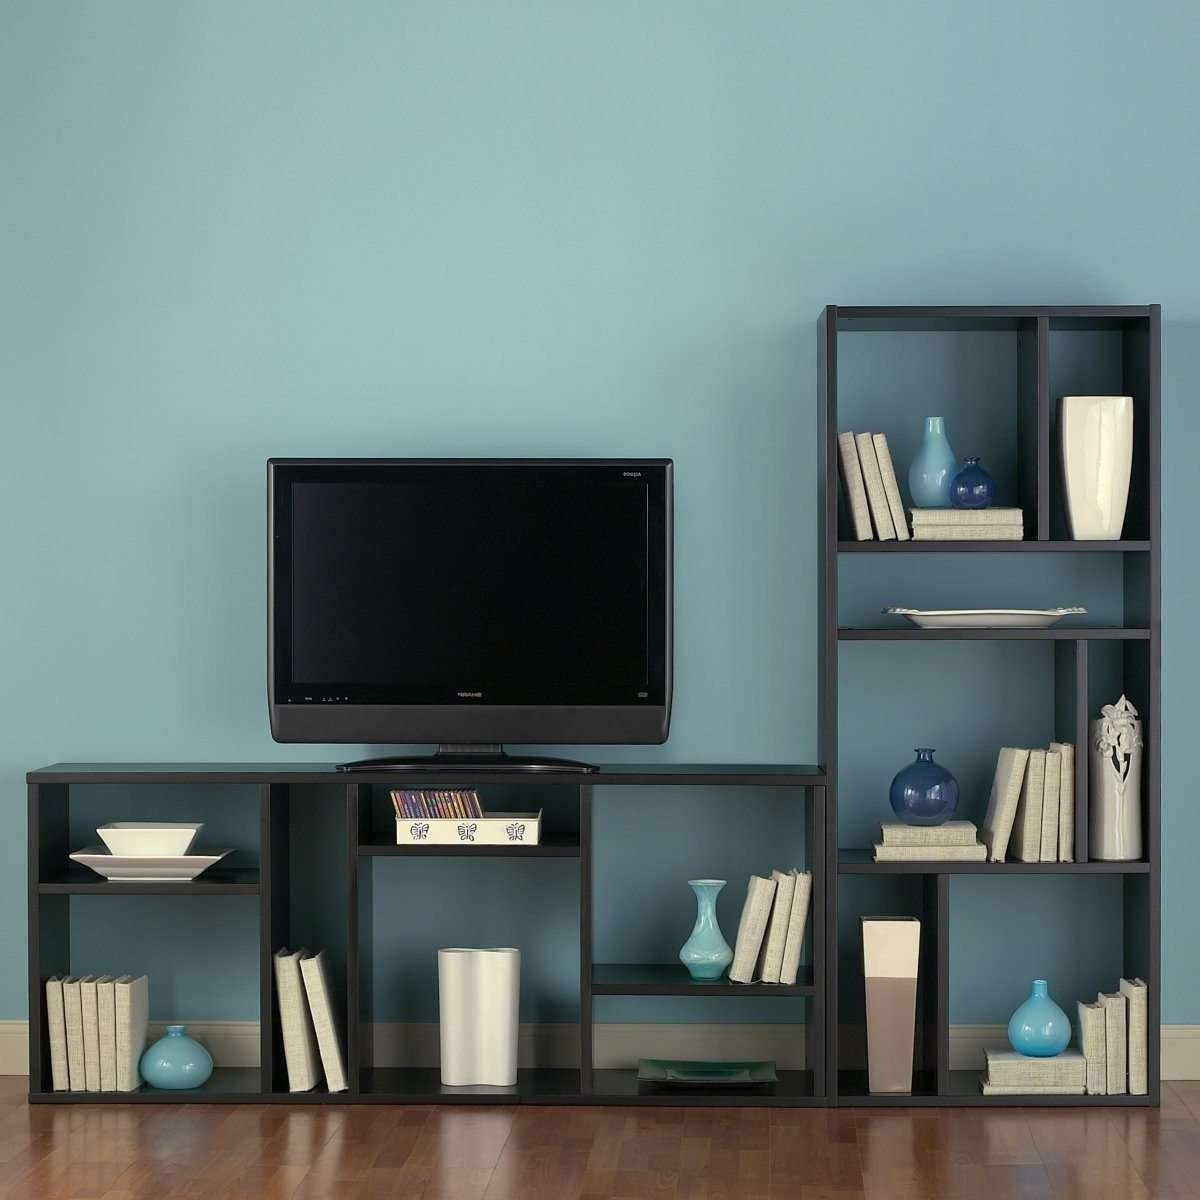 Great Tv Stand With Bookshelves 17 On Interior Designing Home With Regard To Tv Stands And Bookshelf (View 5 of 15)